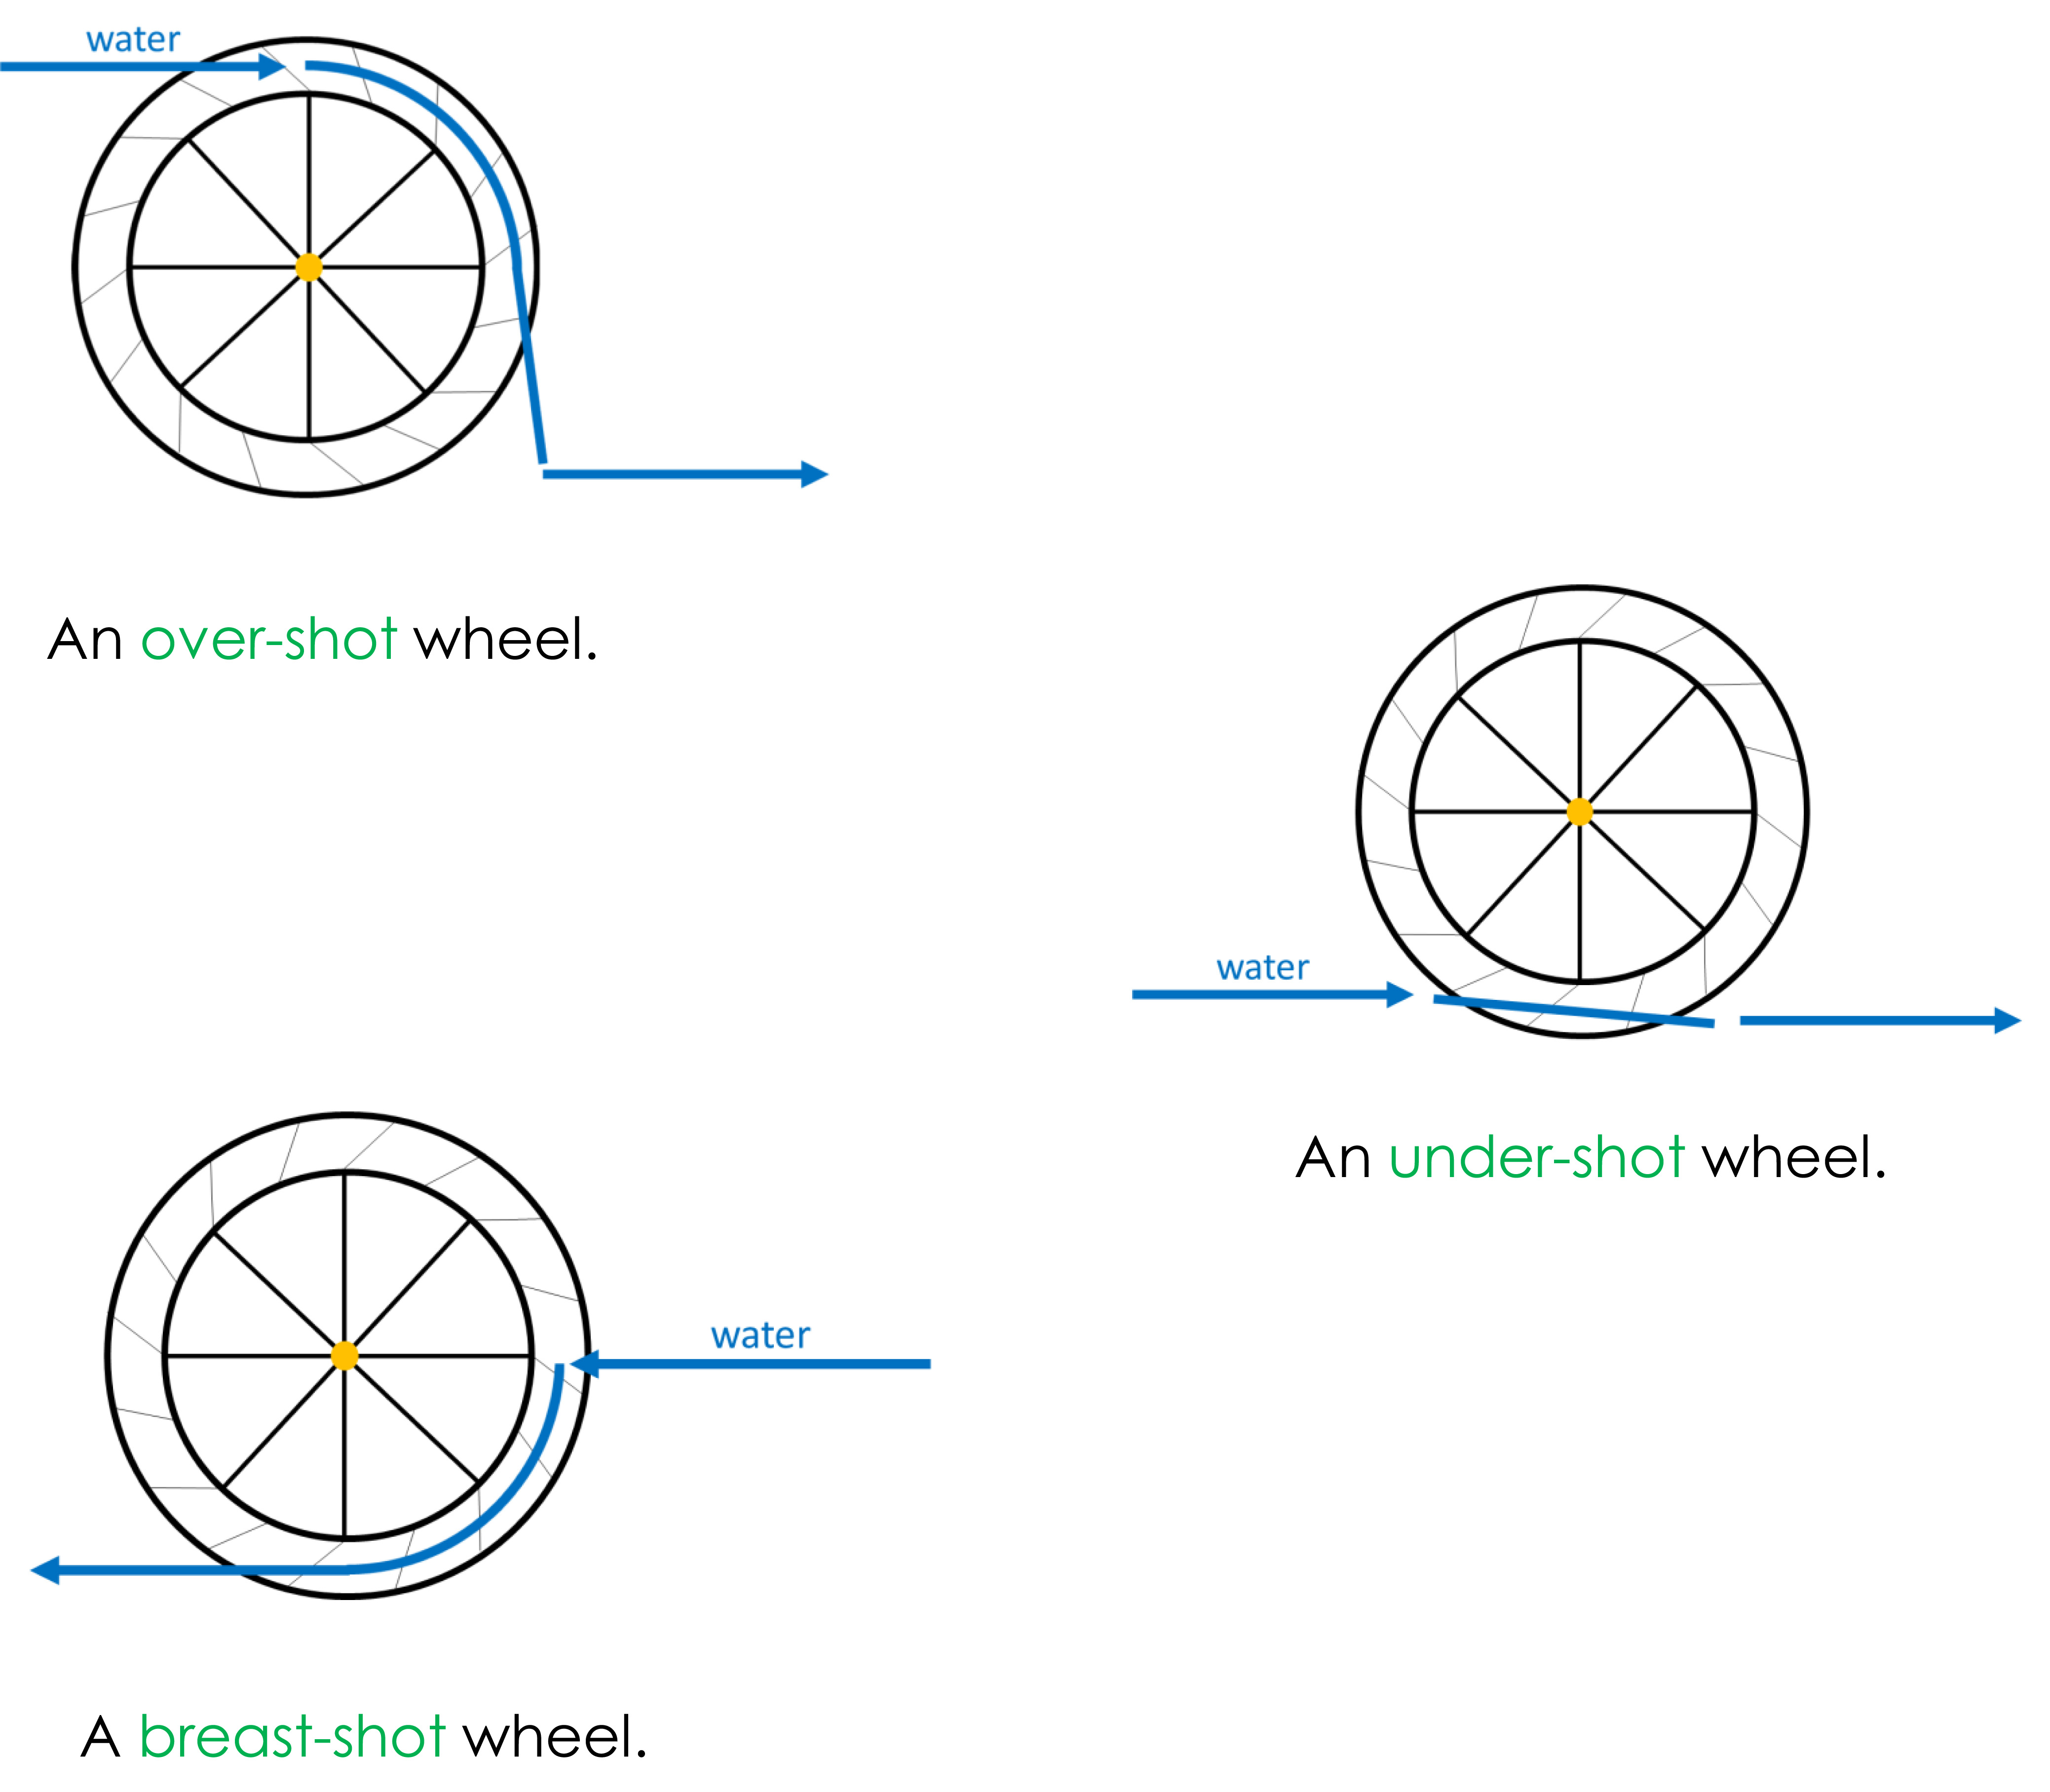 Diagram showing over-shot, under-shot and breast-shot types of water wheels.